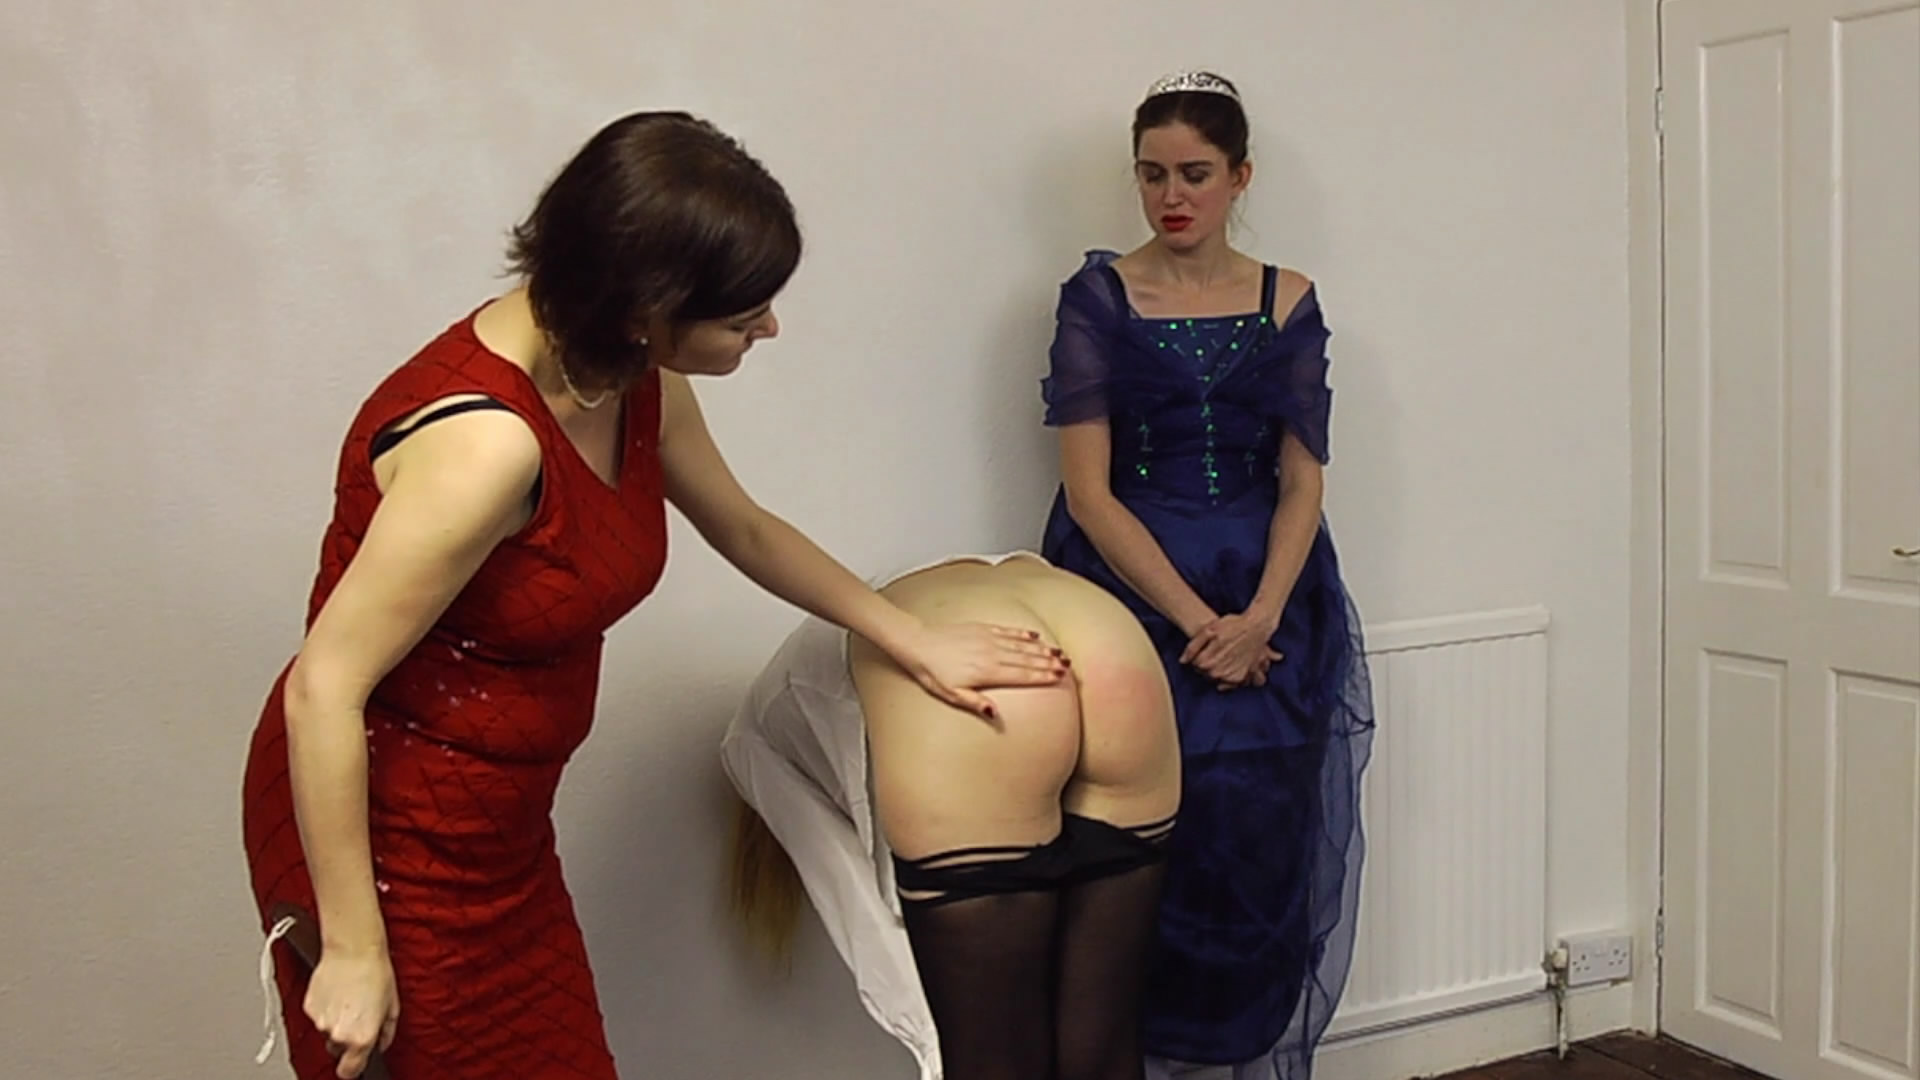 Wellsmackedseat – MP4/Full HD – Amelia Jane Rutherford, Miss Mathews, Nicky Montford – The Pantomime 7